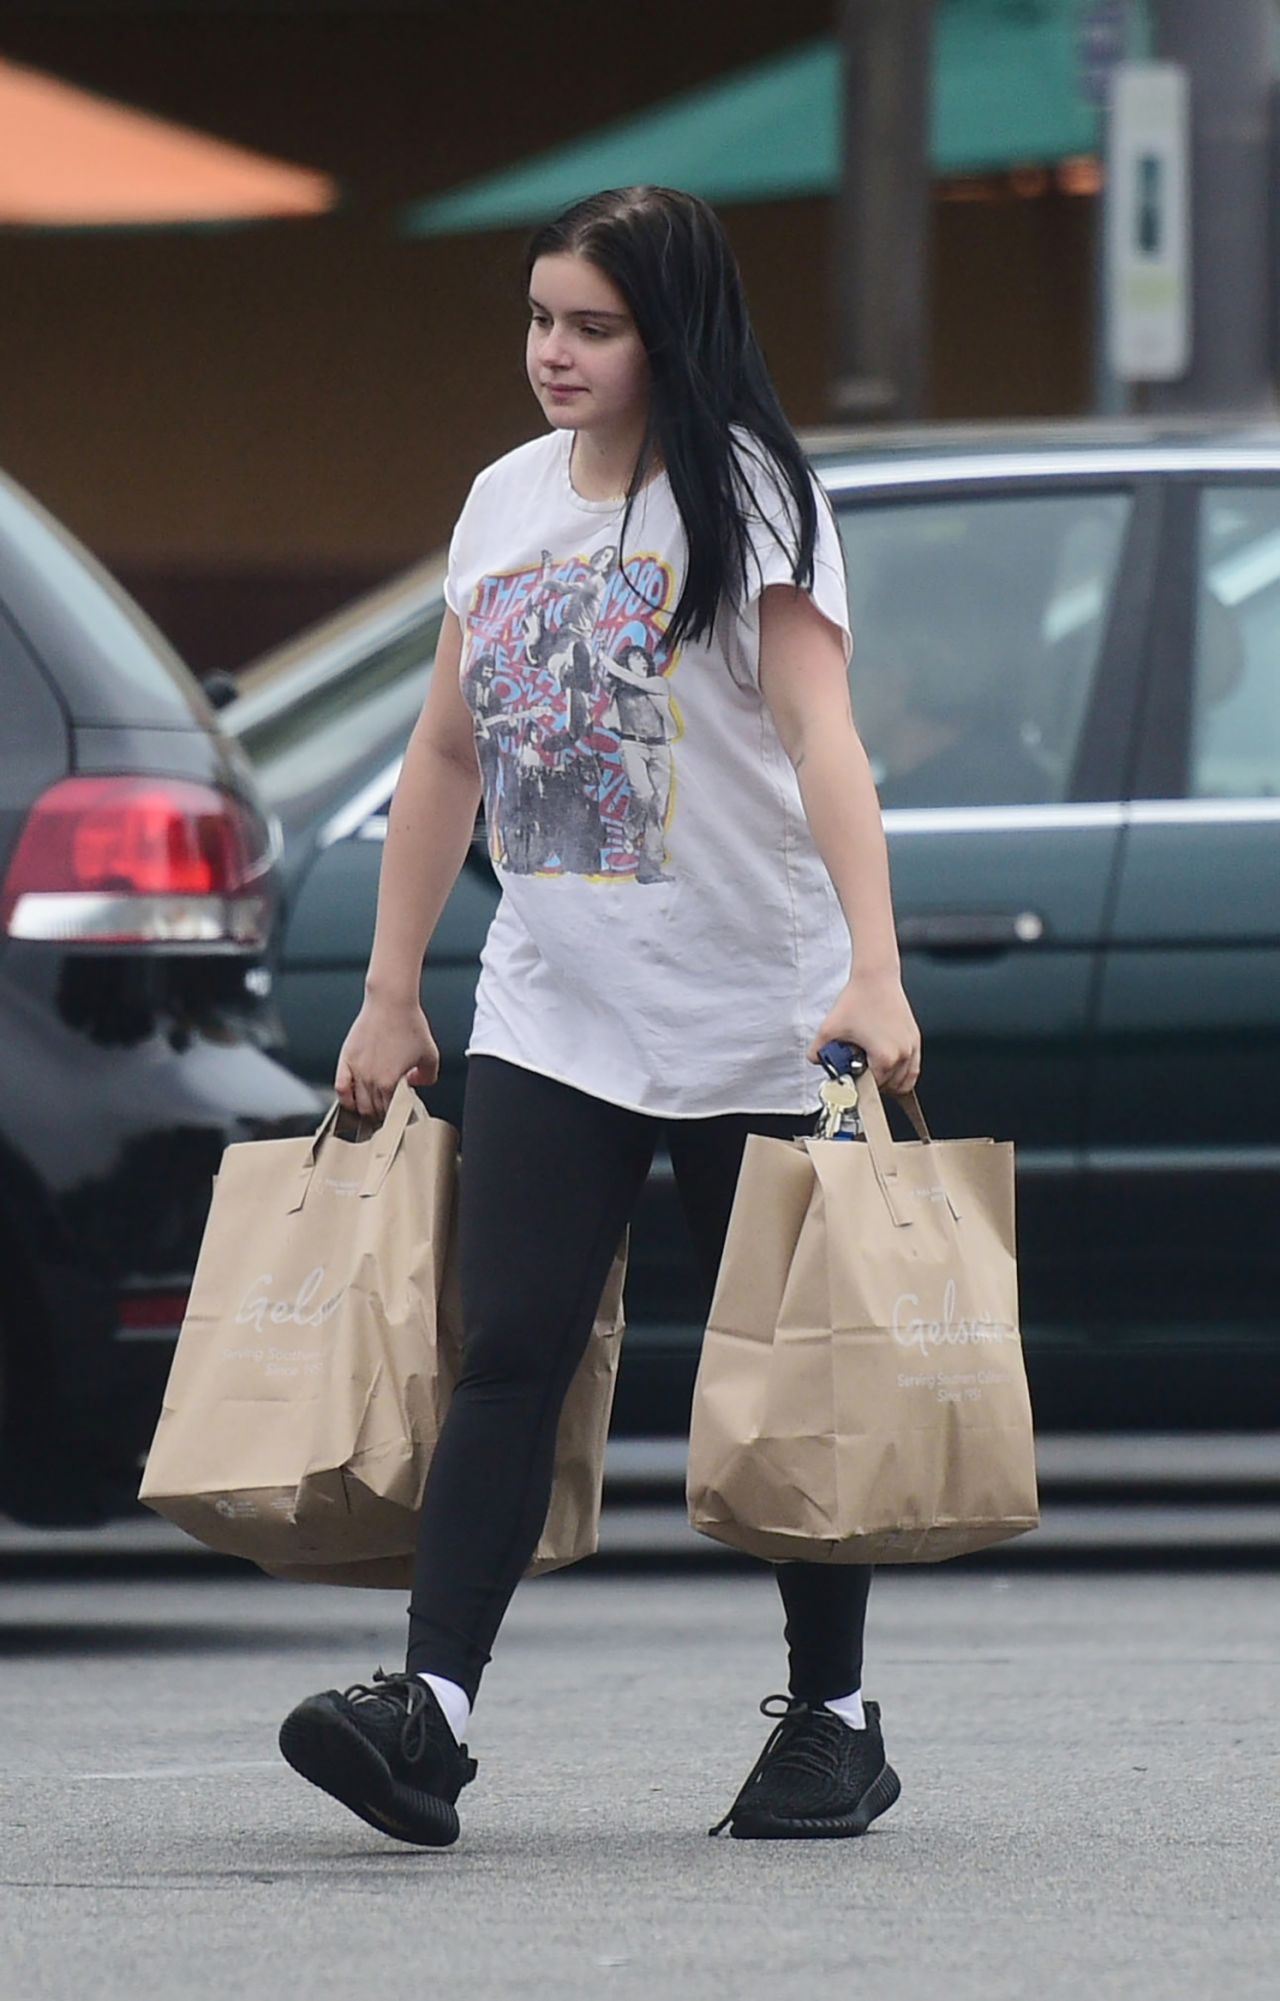 Ariel Winter Grocery Shopping In La 06 17 2018